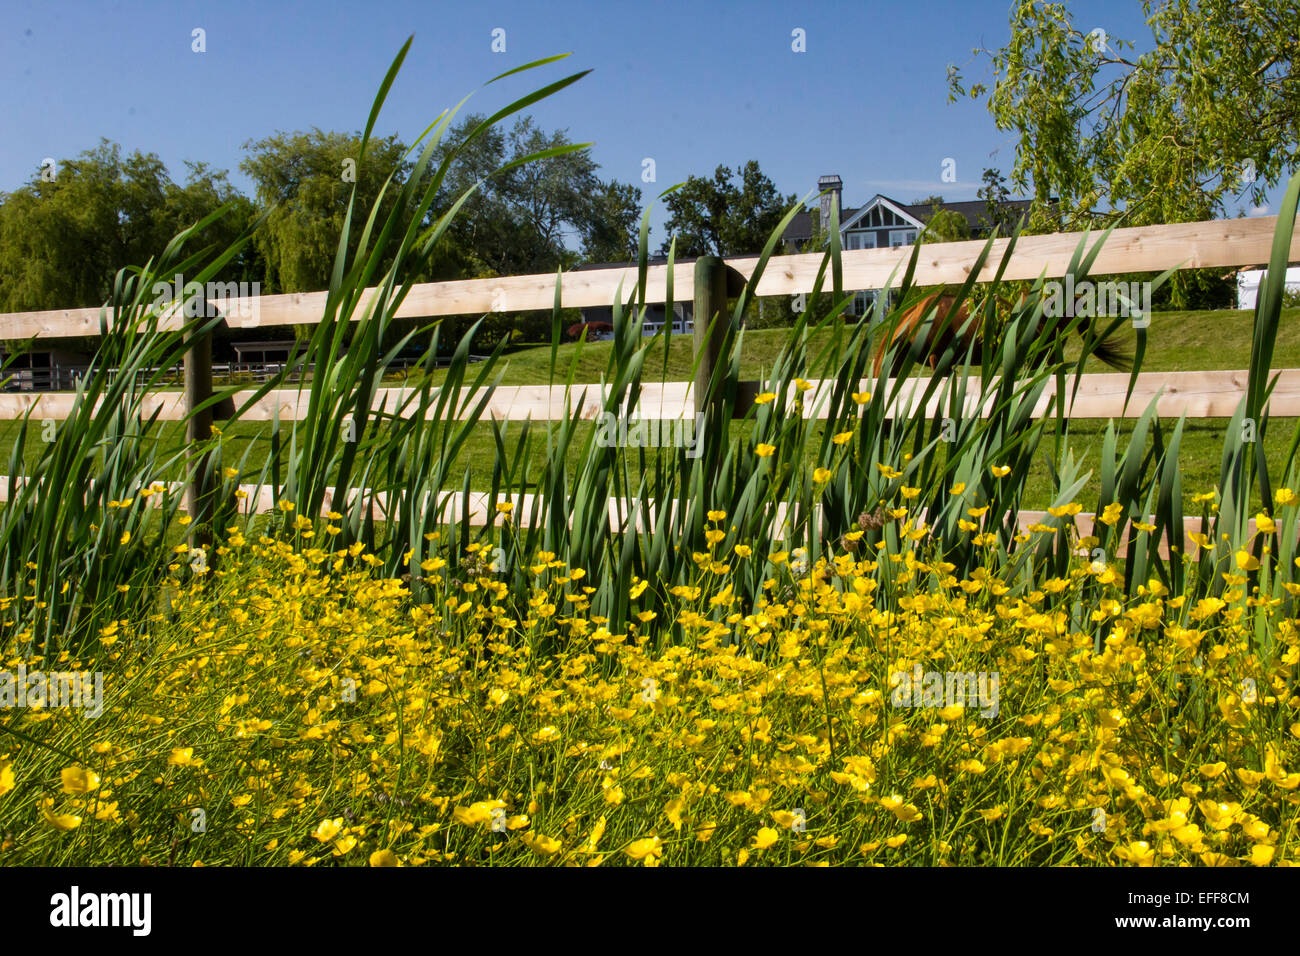 Field Of Yellow Flowers And Grasses Against The Rail Fence Of A Farm